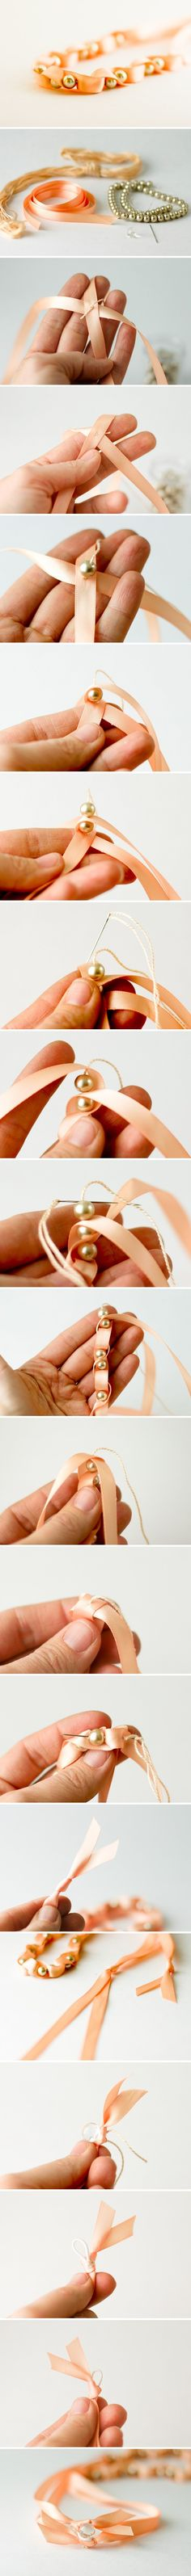 Makes more sense than the other ribbon & pearl project I tried.  DIY Ribbon craft #diy #craft www.BlueRainbowDesign.com